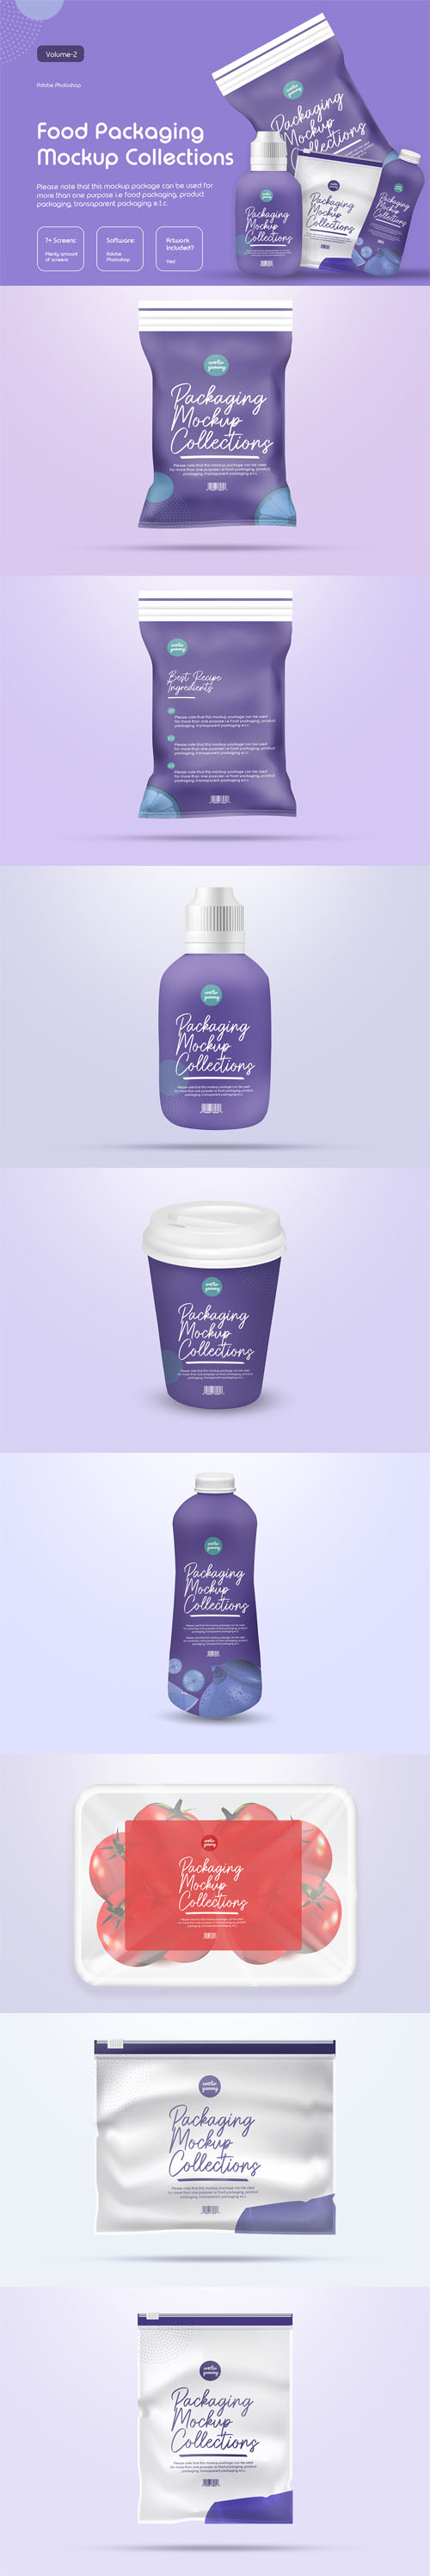 Food Packaging PSD Mockup Collection Vol.2